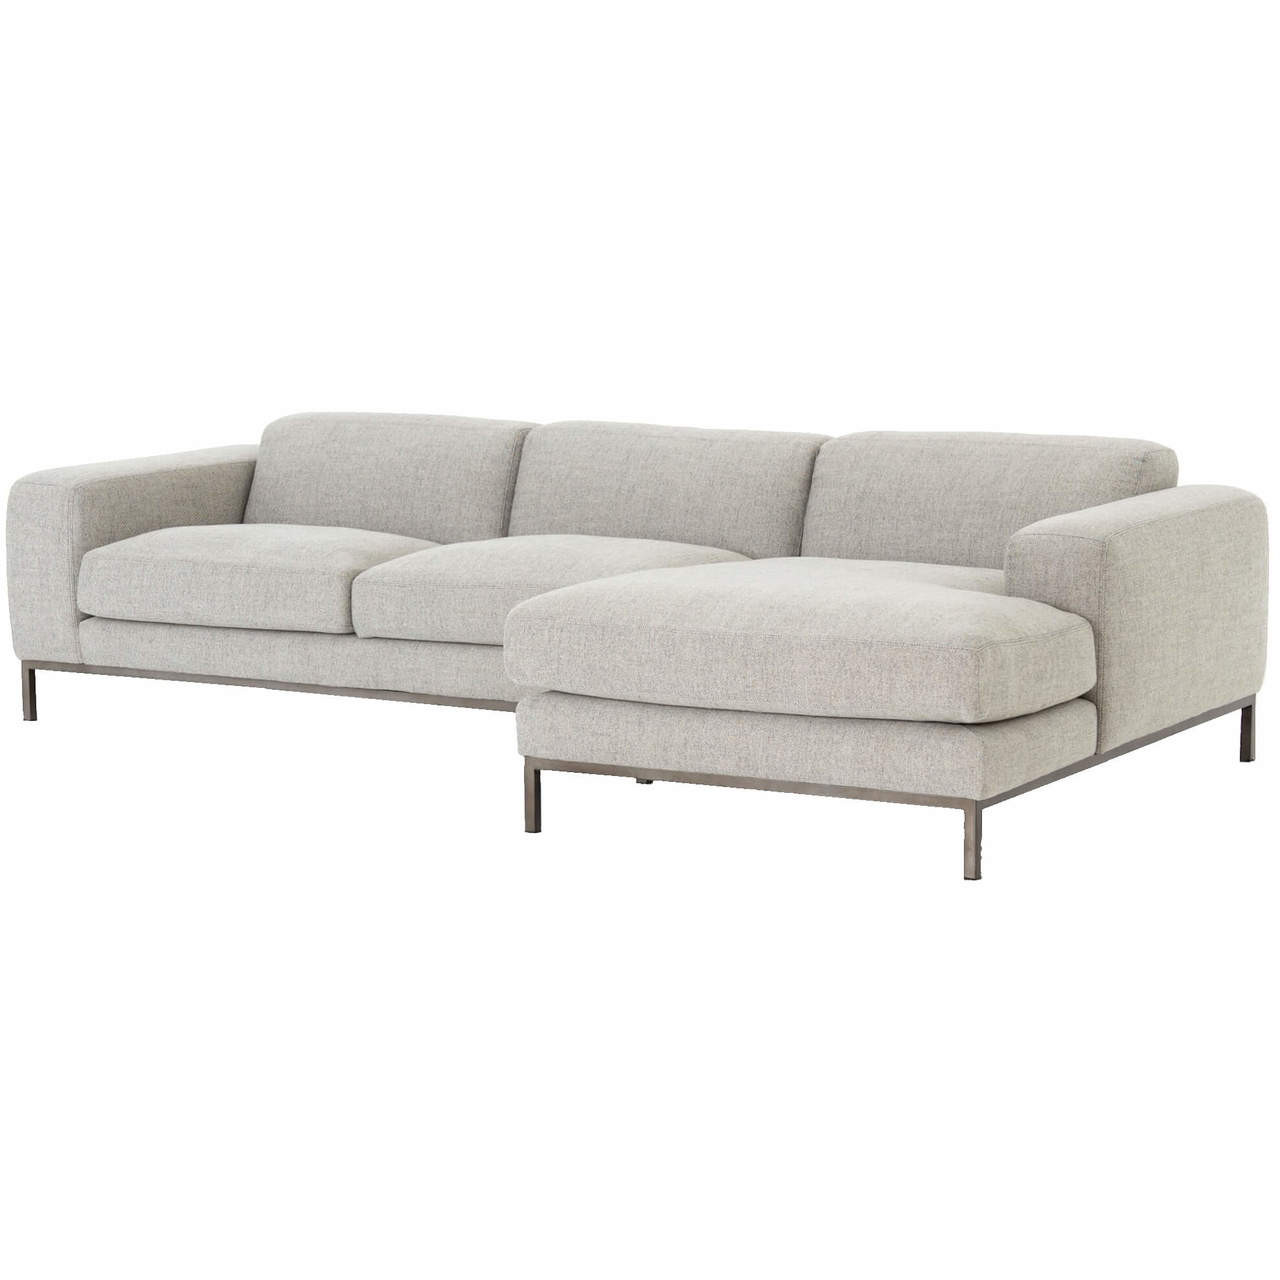 Benedict Modern Grey Fabric Right Facing Sectional Sofa 111